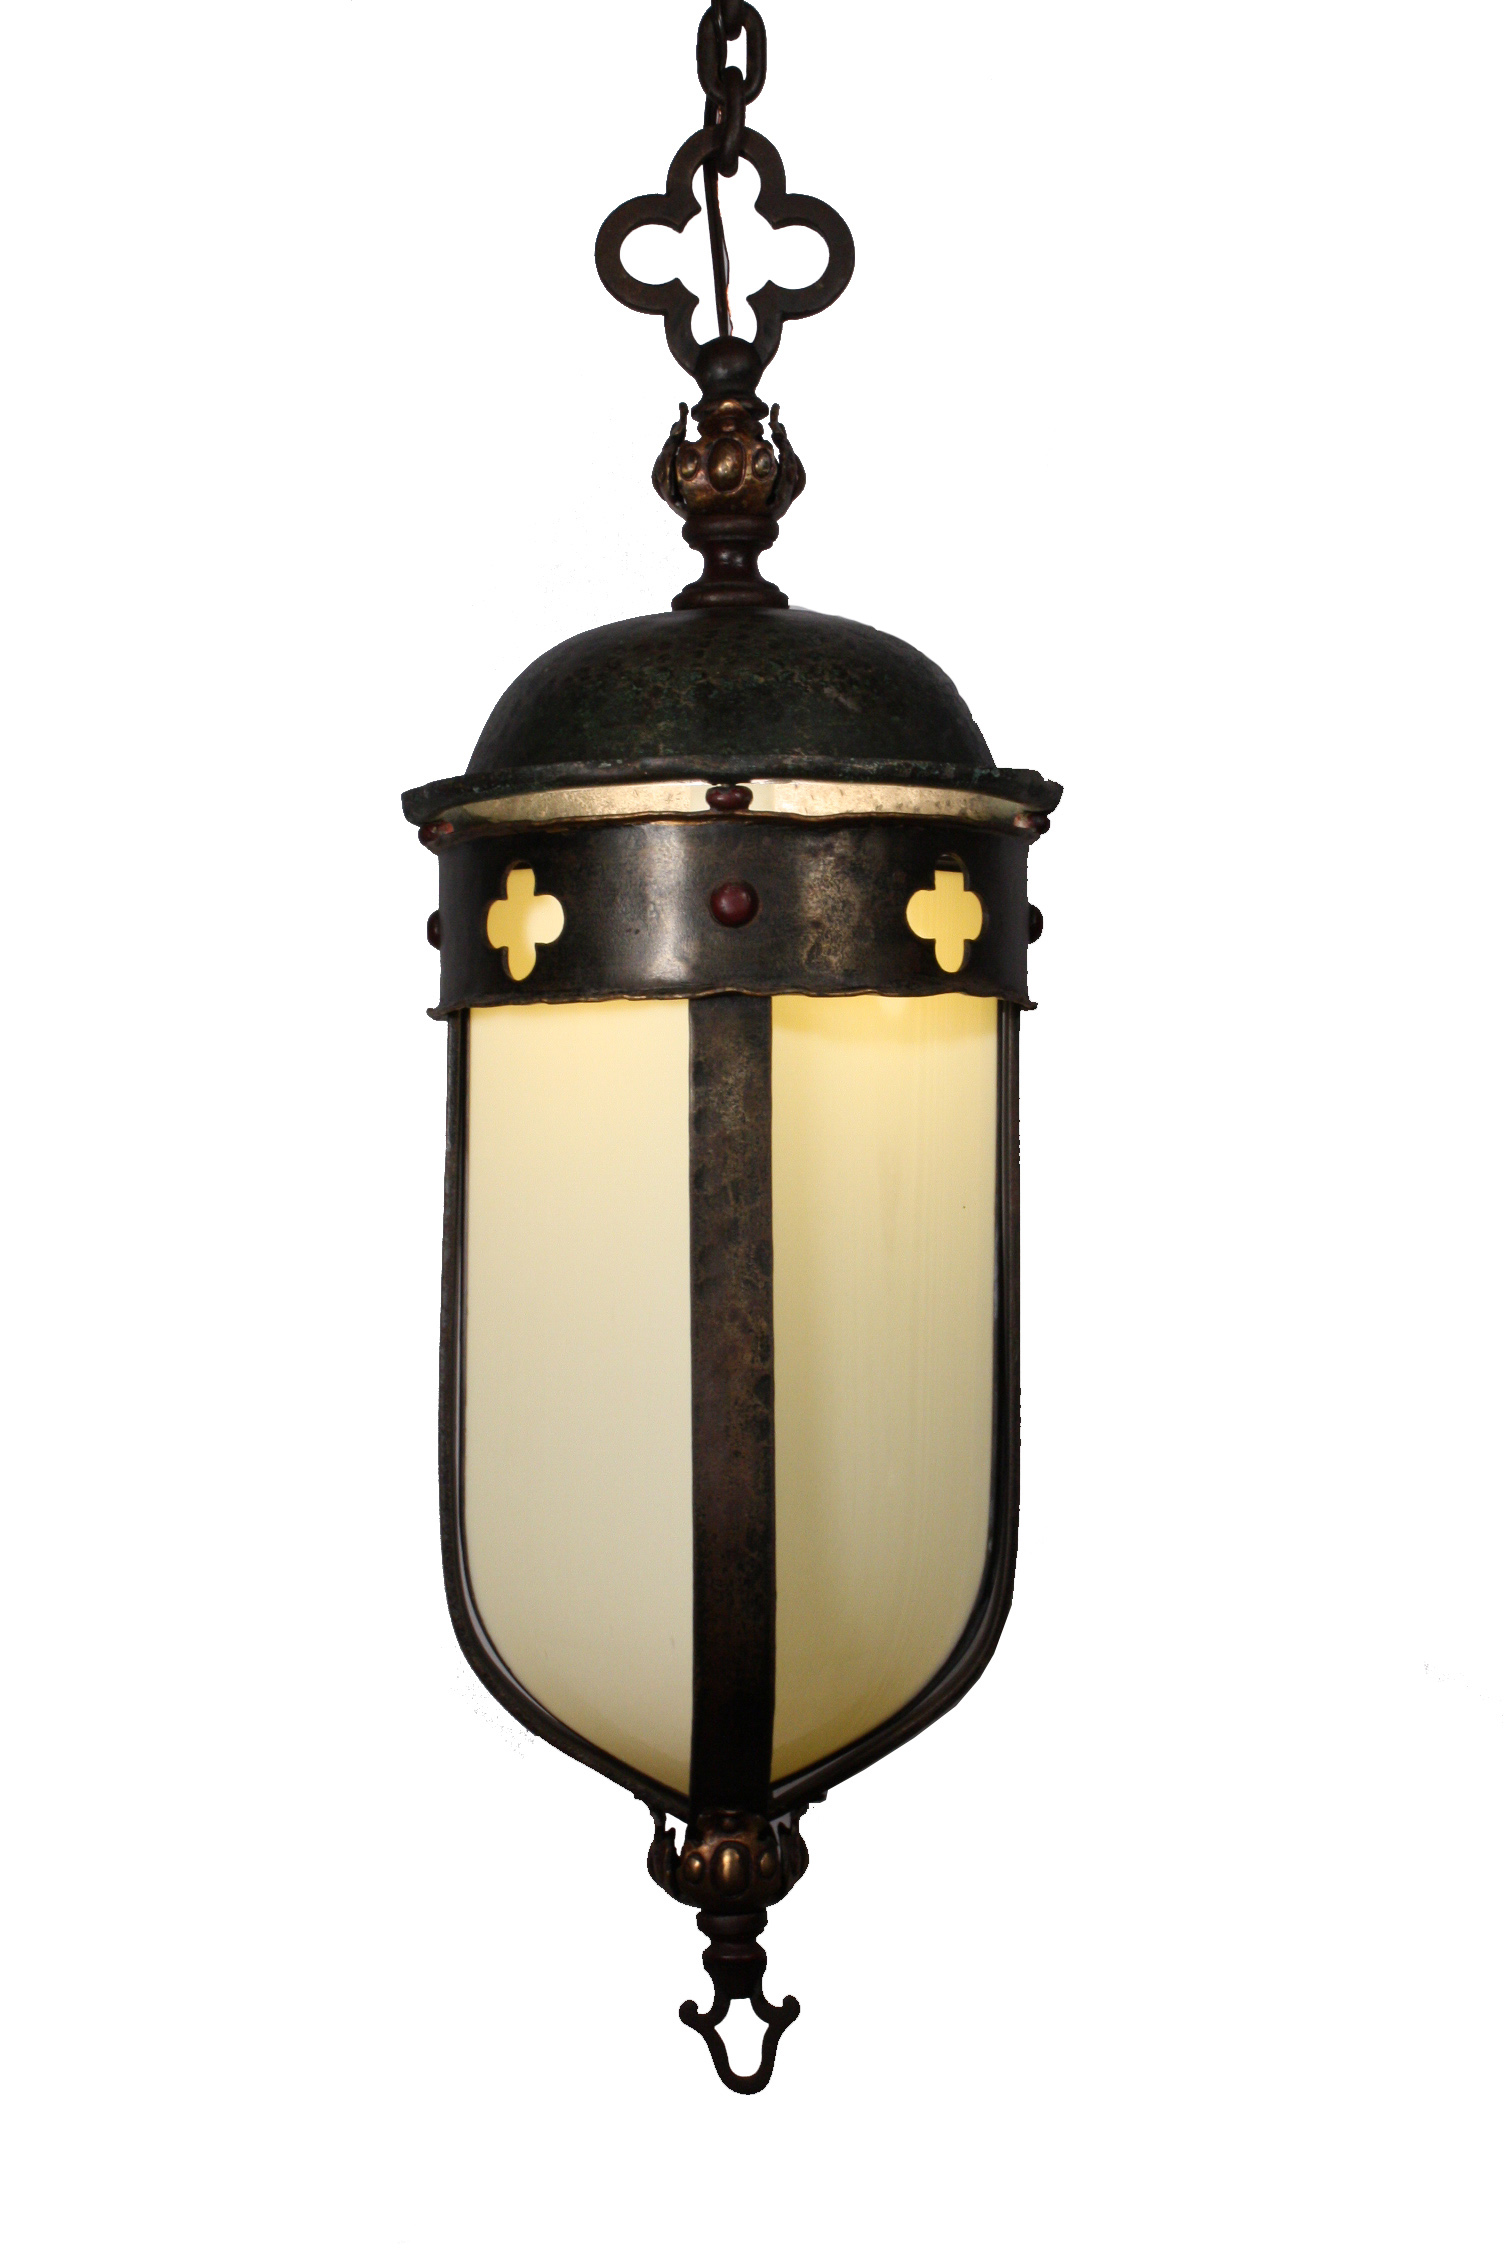 Large Antique Gothic Revival Lantern, Iron & Bronze, Early ...